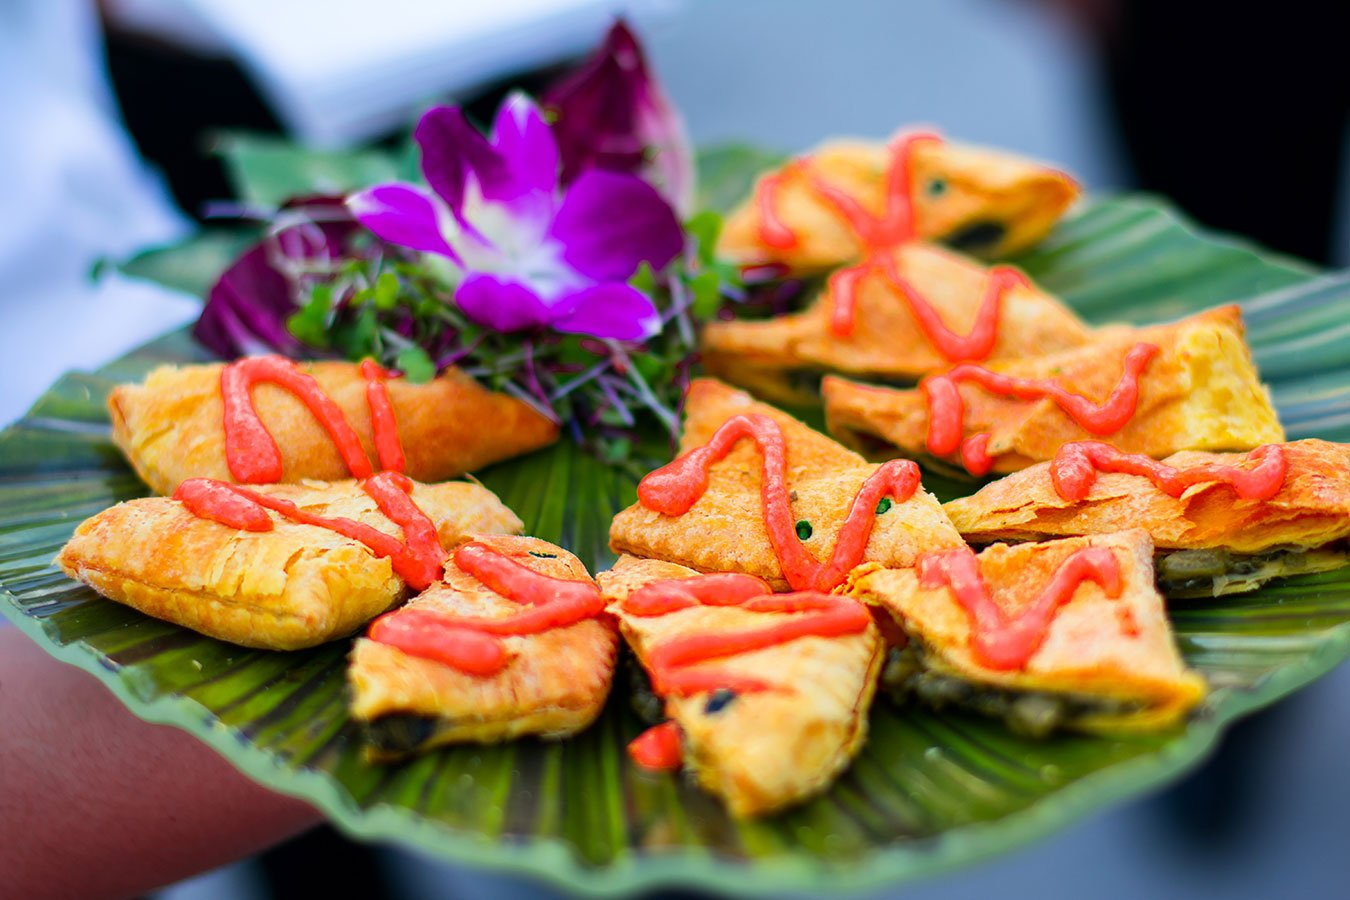 Catering Fort Lauderdale   Hors d'oeuvre   Jamaican Callaloo Patties with Roasted Red Papper Aioli   FATVillage Arts District